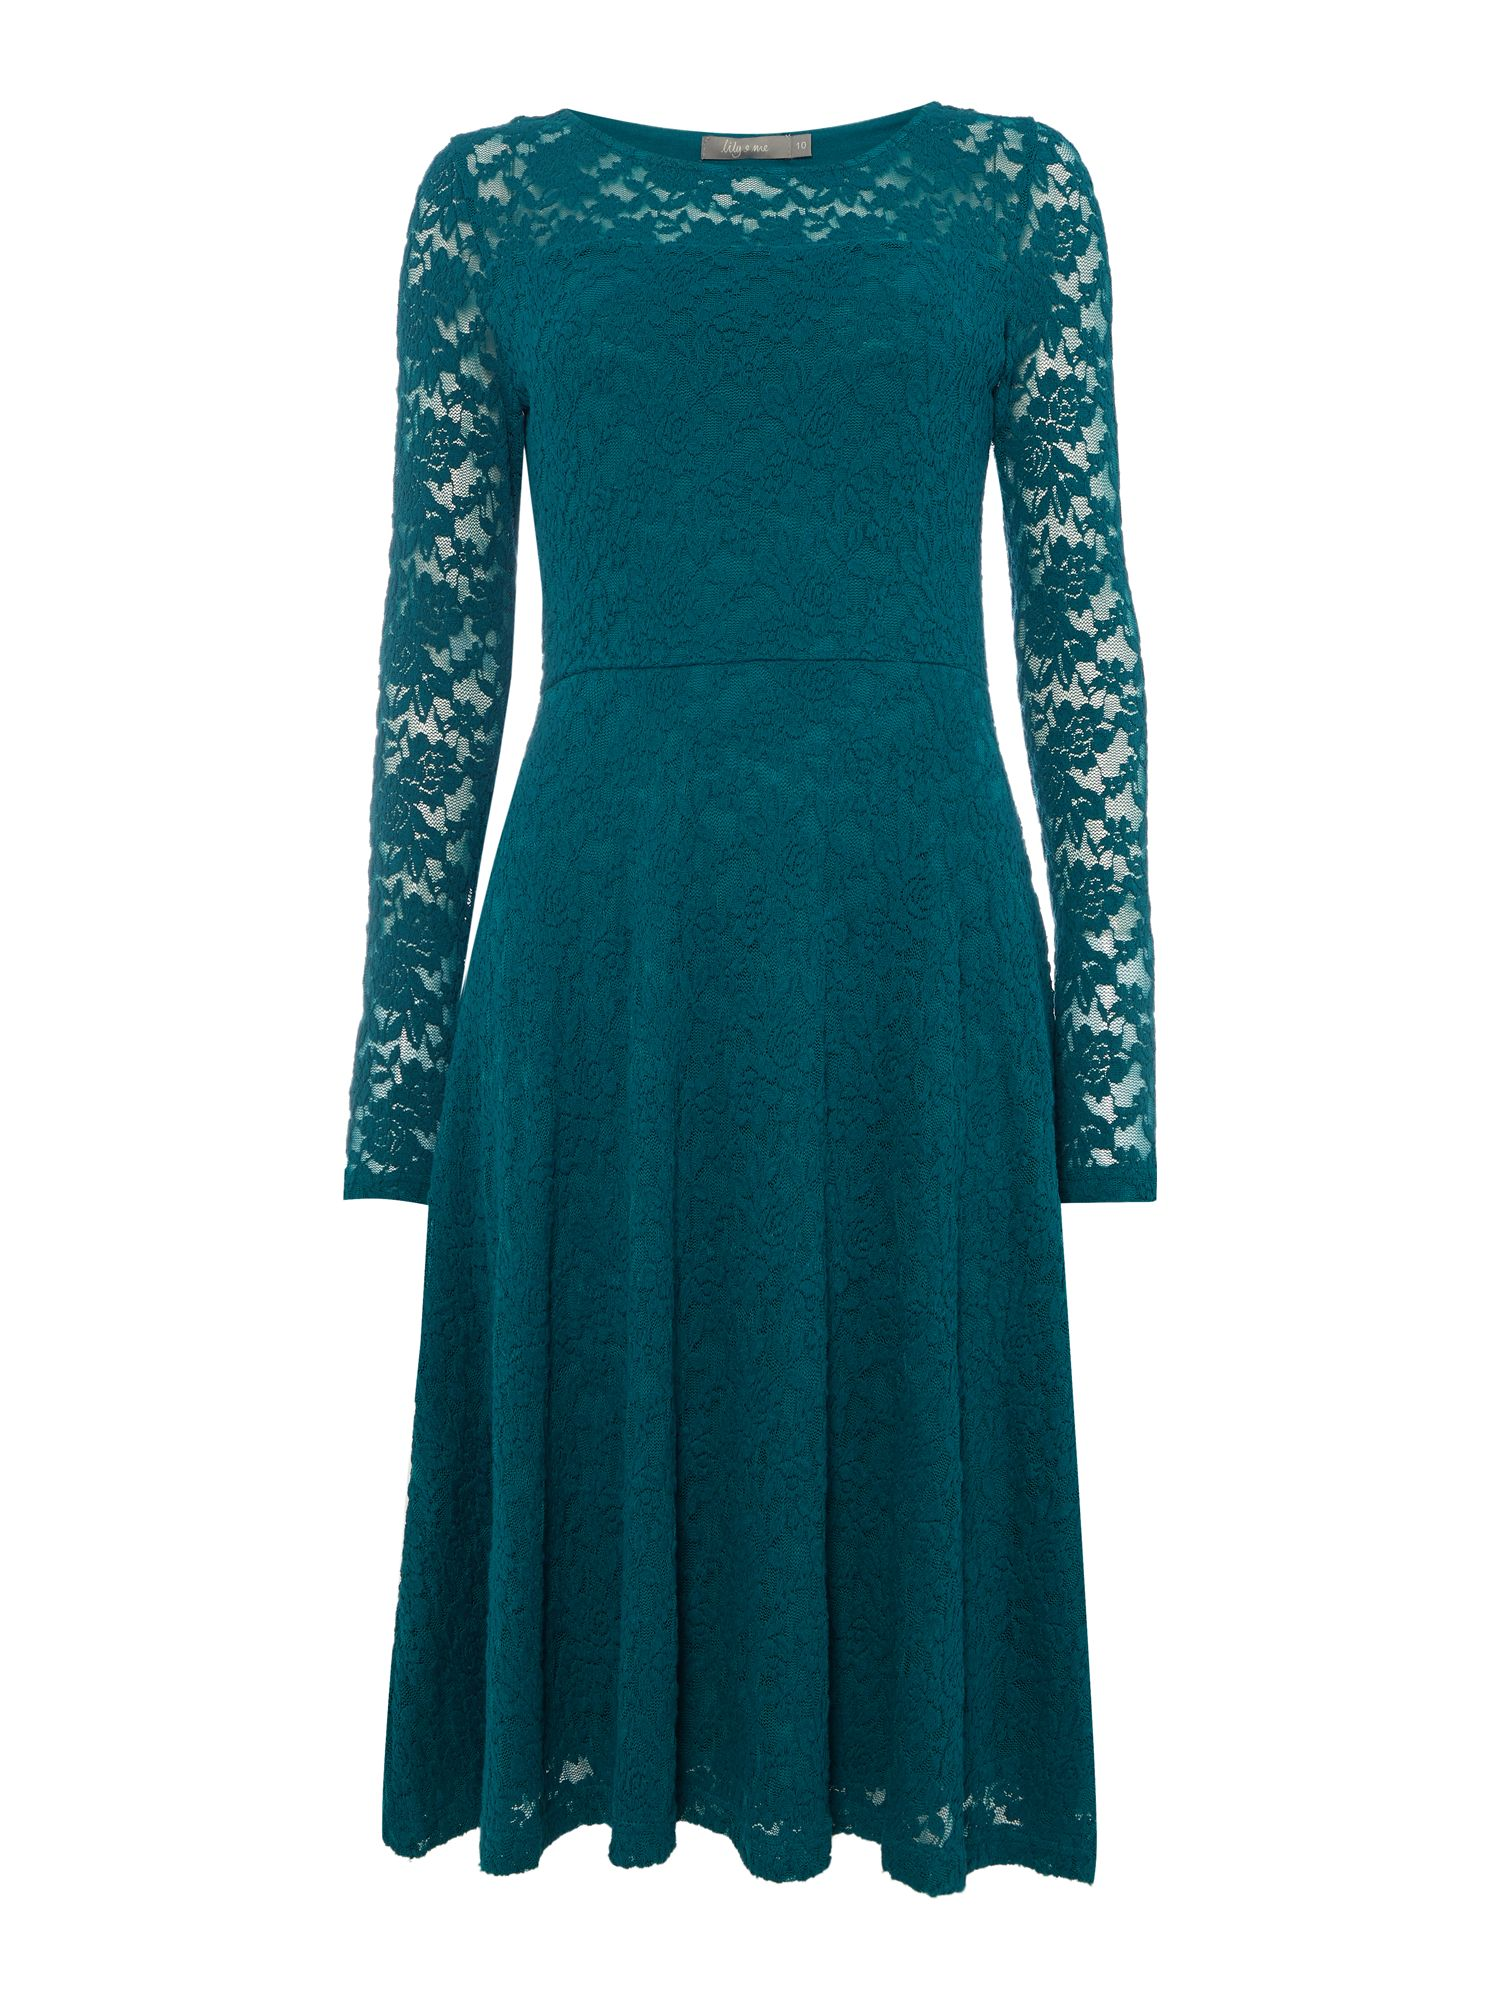 LILY & ME LILY & ME Elegant Embroidered Lace Dress, Dark Green